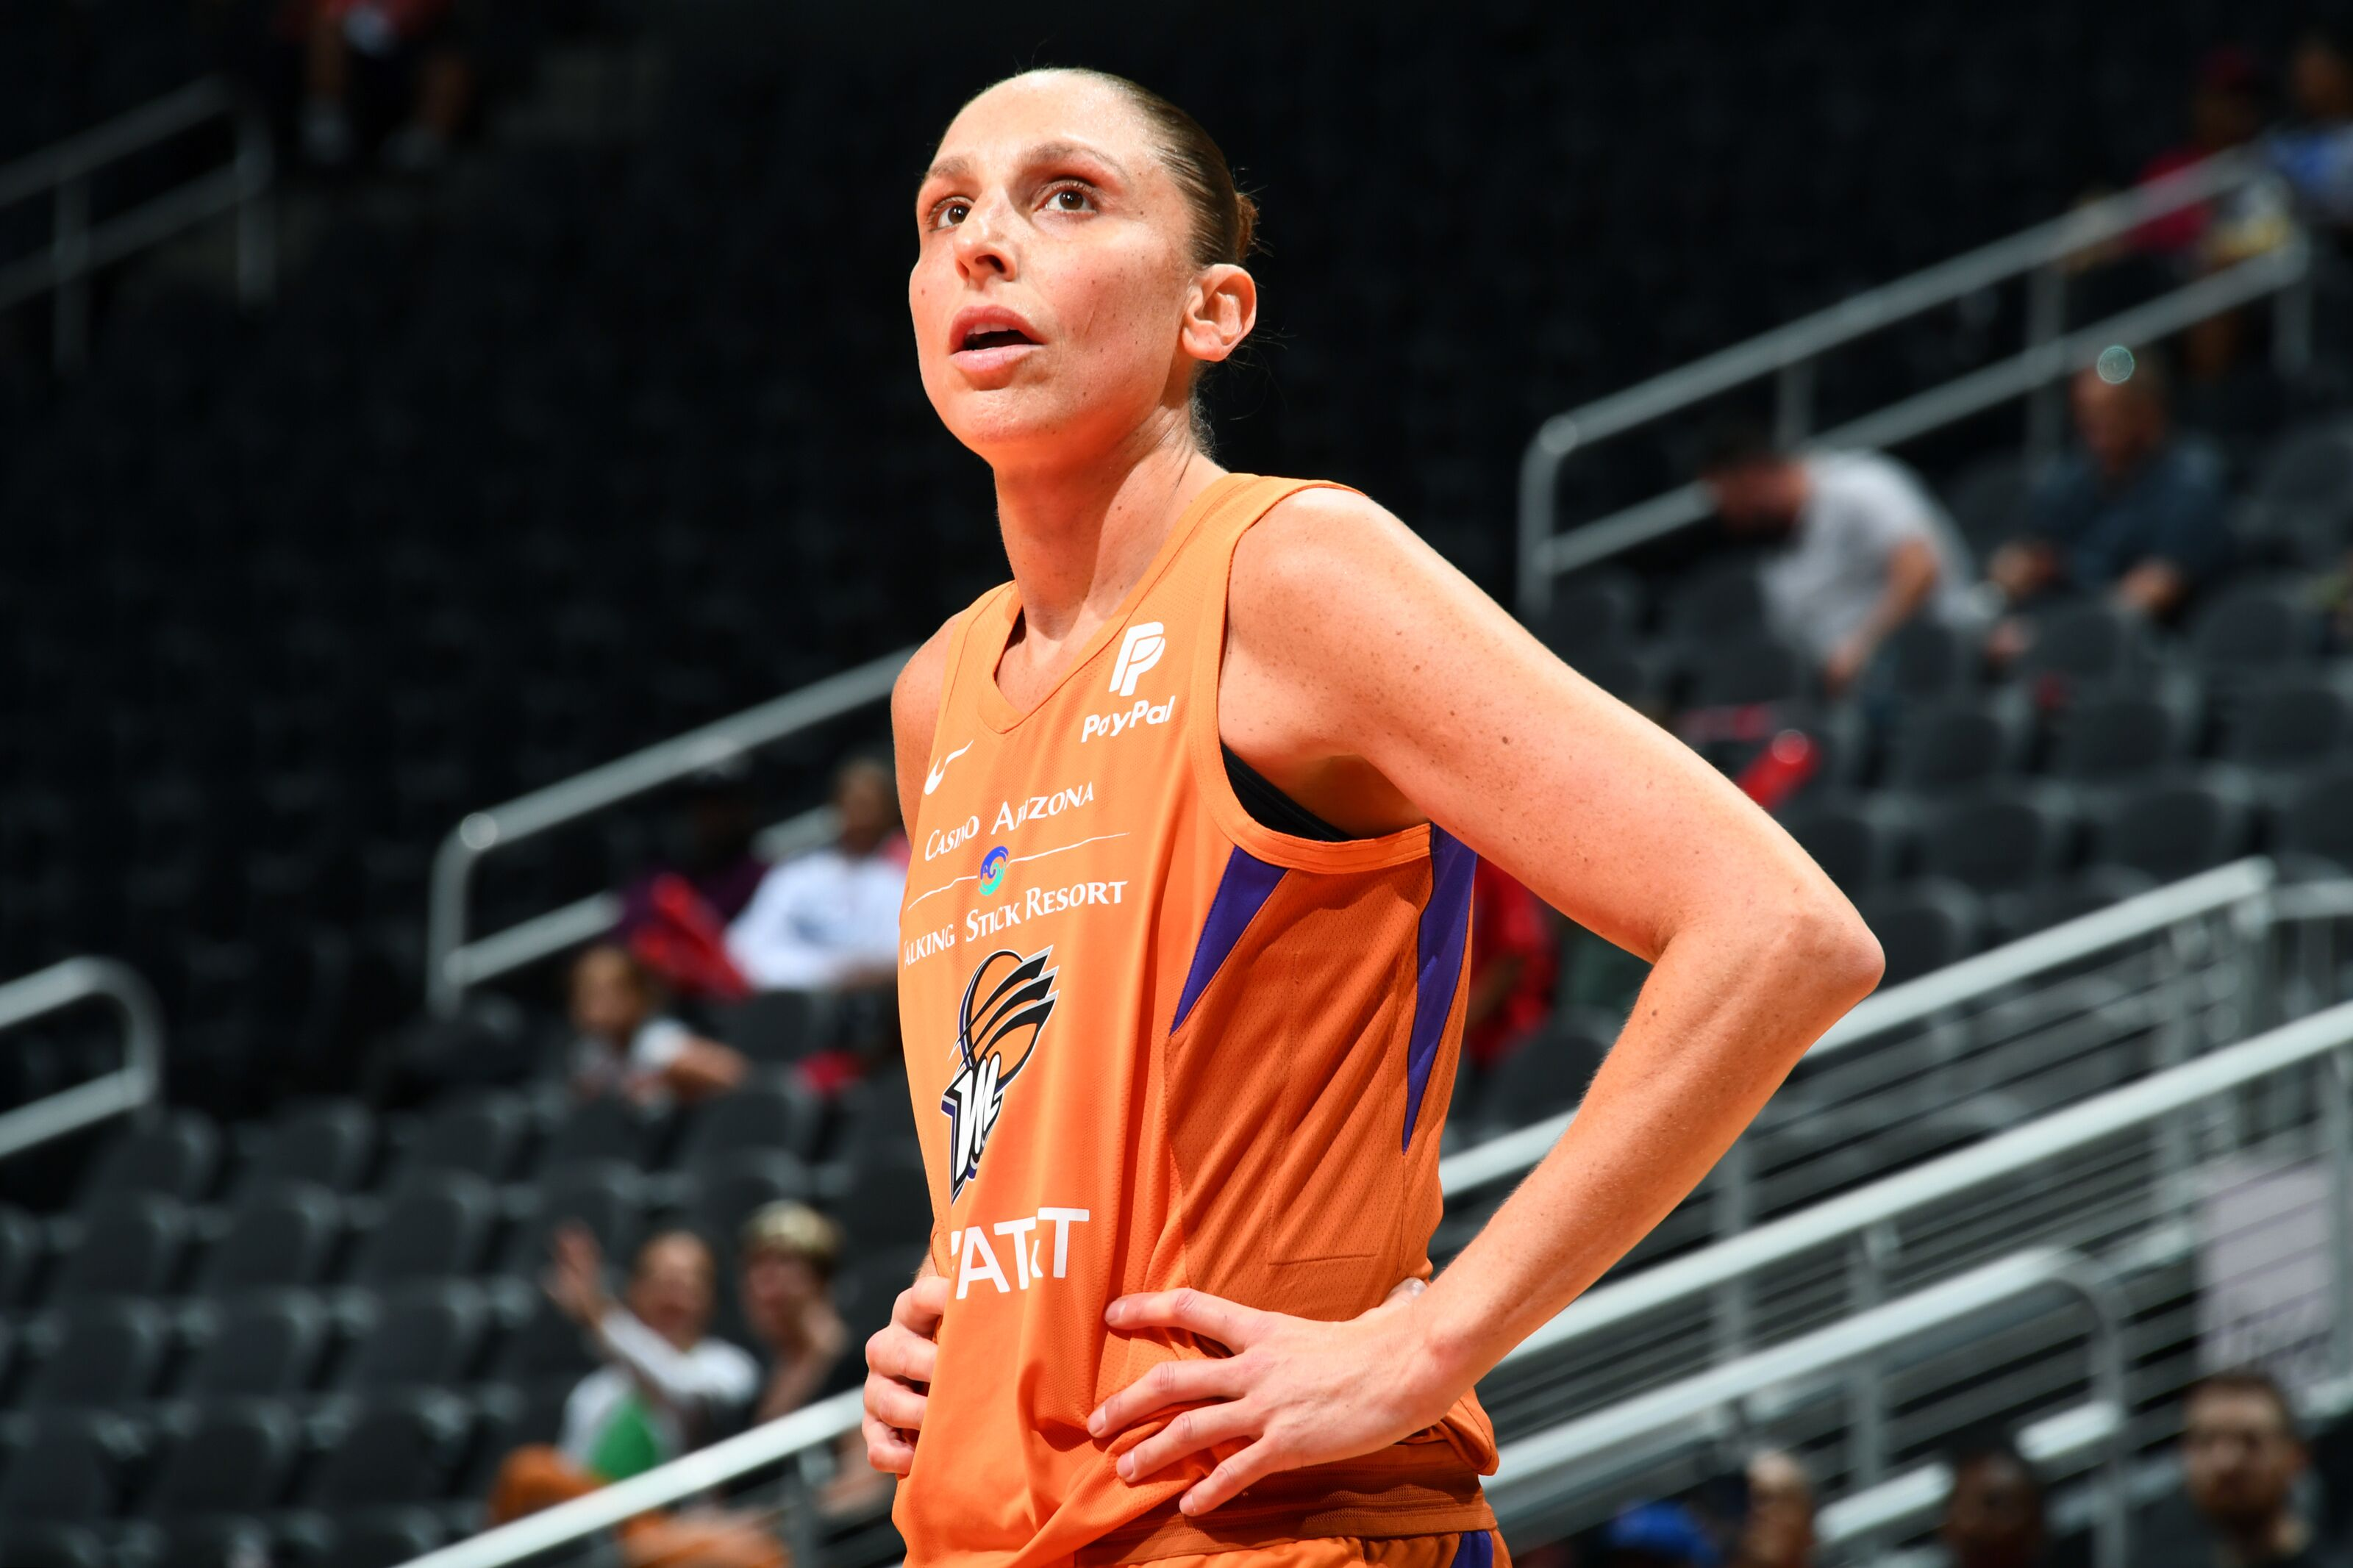 Diana Taurasi doubtful for opening round of WNBA playoffs